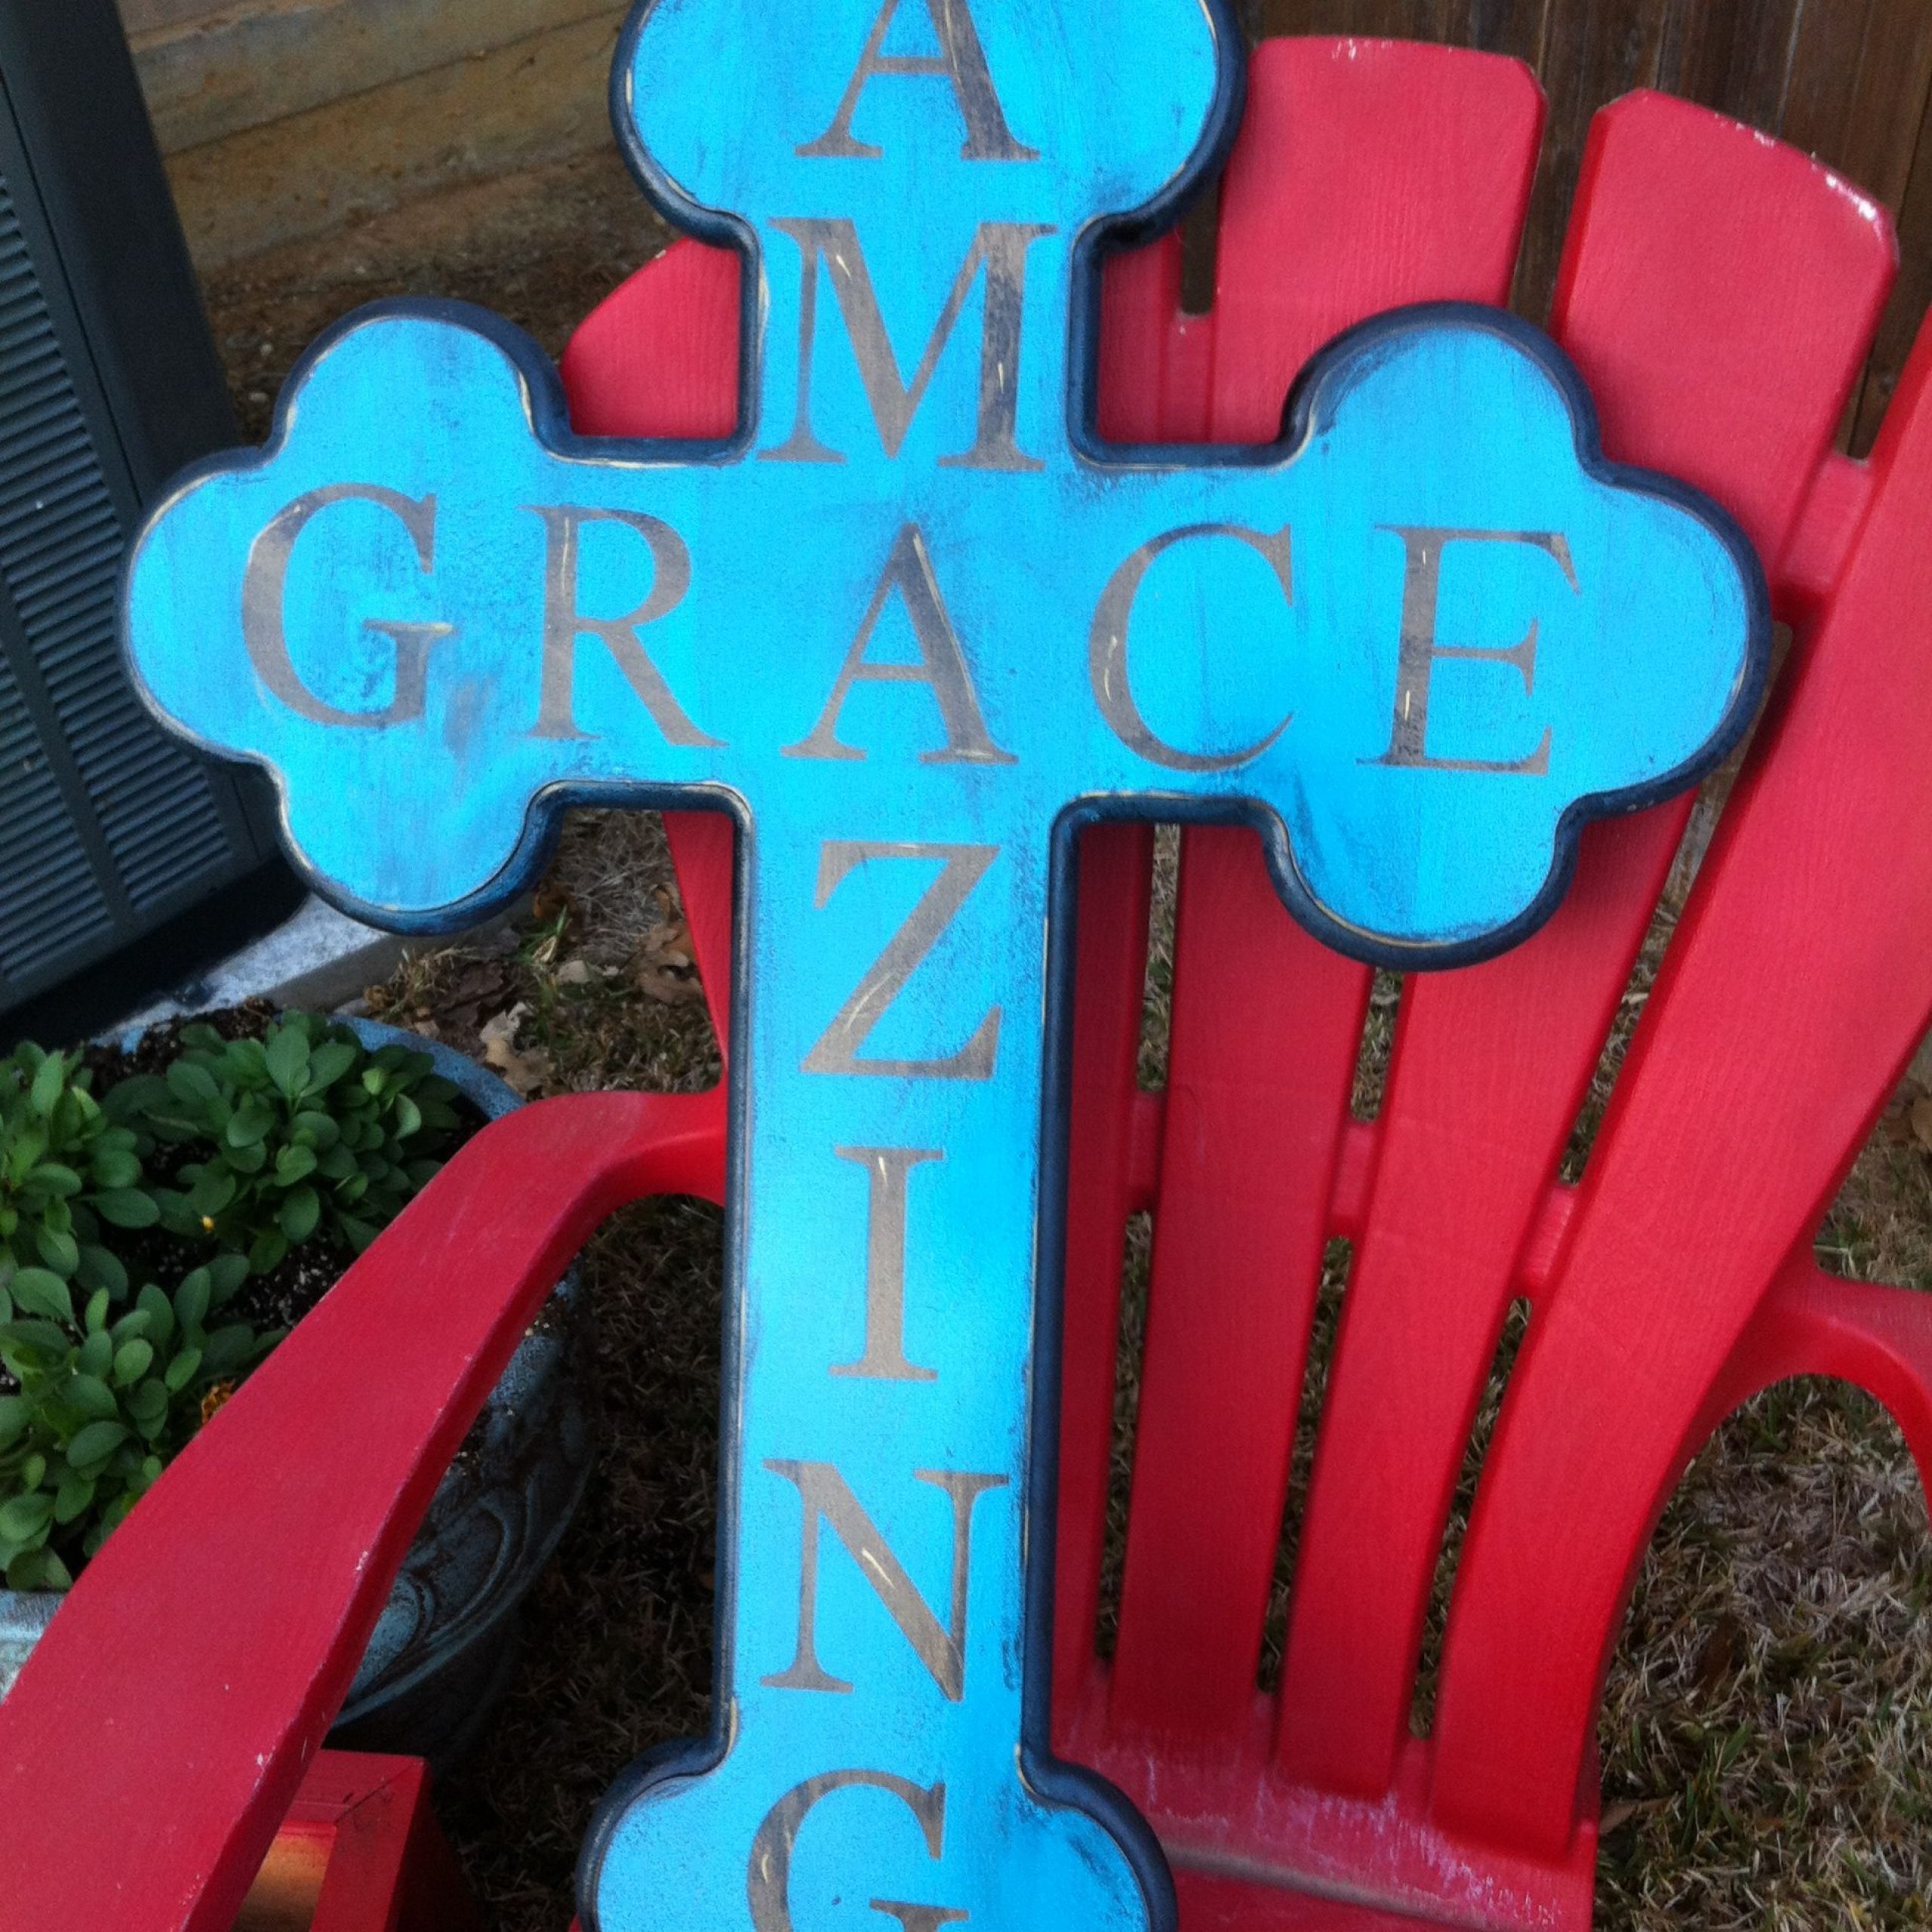 Wall Crossmade Of Wood, Paint & Letter Stencils Intended For Current Blended Fabric Amazing Grace Wall Hangings (View 13 of 20)